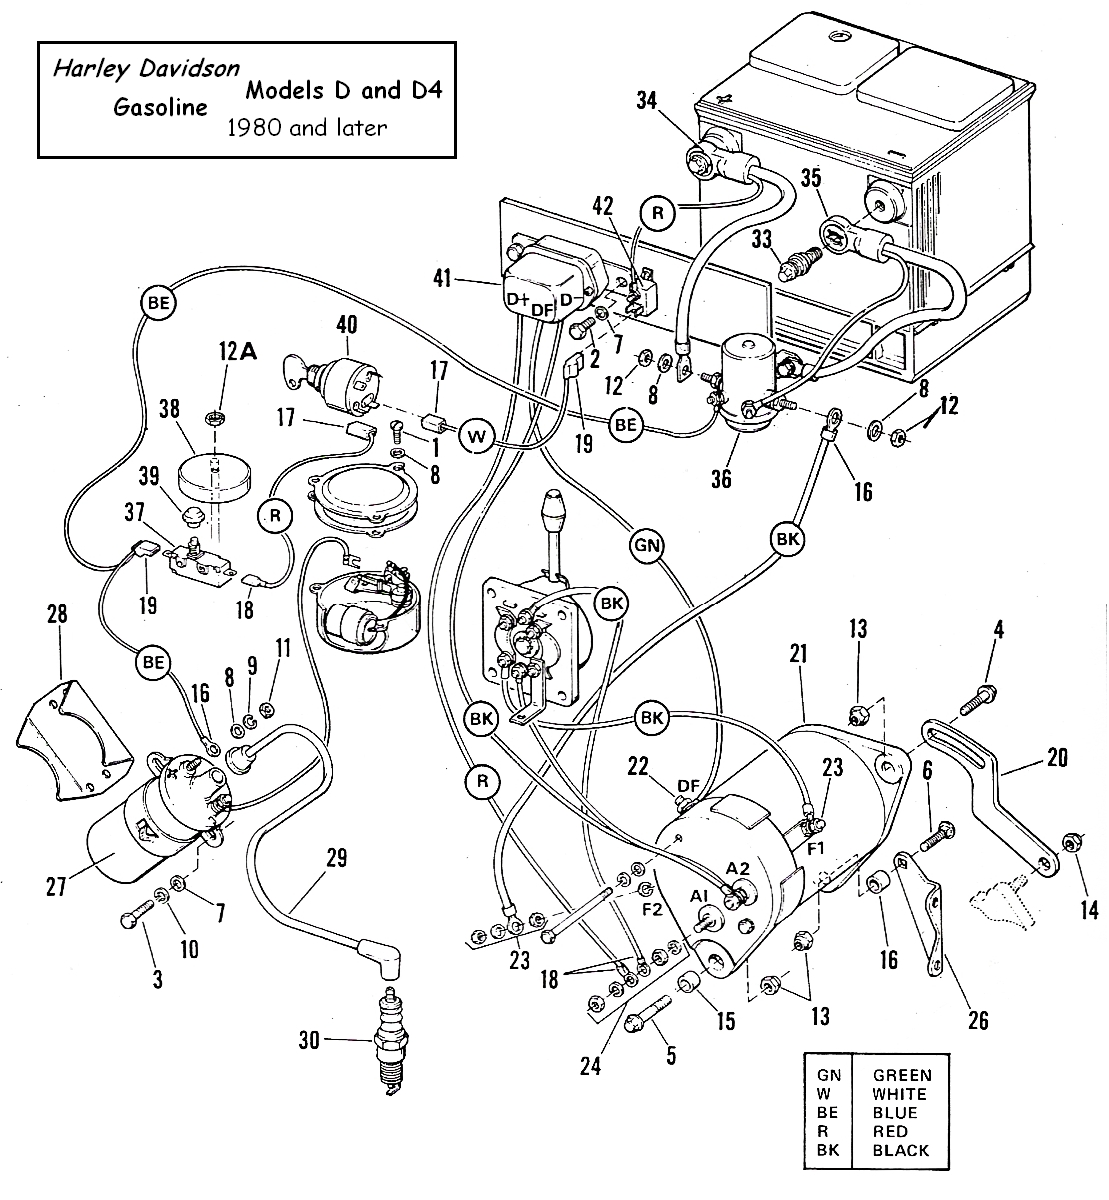 e z golf wiring diagram with Gallery on 1536 Basic Ezgo Electric Golf Cart Wiring Manuals likewise Ford F 250 Front End Parts Diagram Dfac7e46c2882956 moreover 2010 Z4 gt3 also 8iq2t Electric Vehicles Ez Go Marathon Ez Go Marathon furthermore E Z Go Marathon.